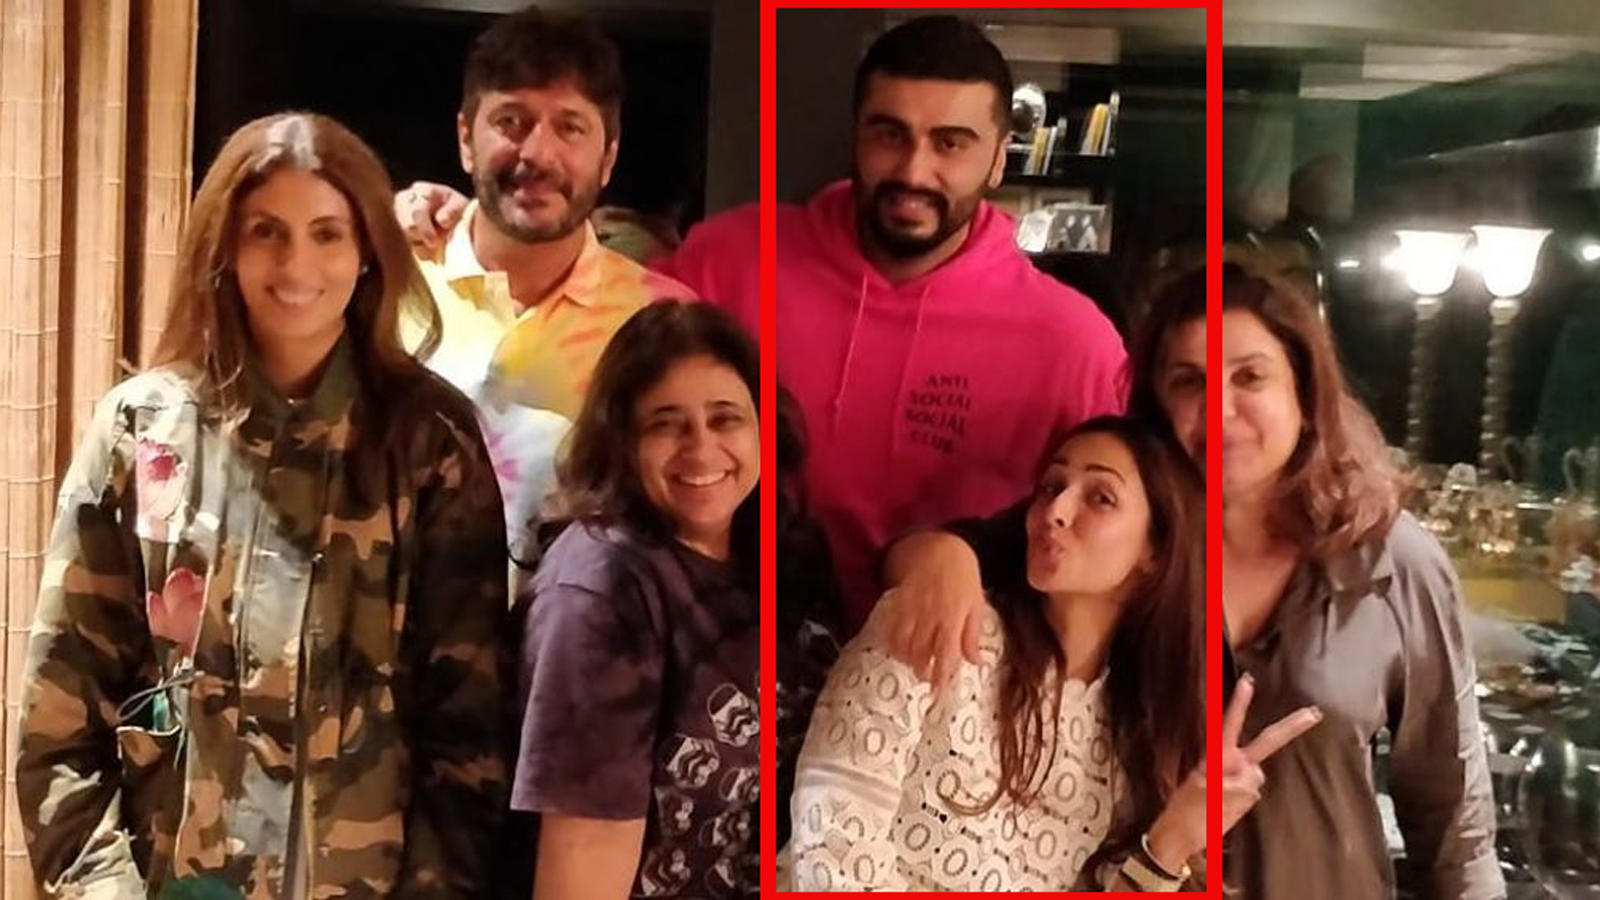 Squad goals! Malaika Arora, Arjun Kapoor spend quality time with friends, pic goes viral